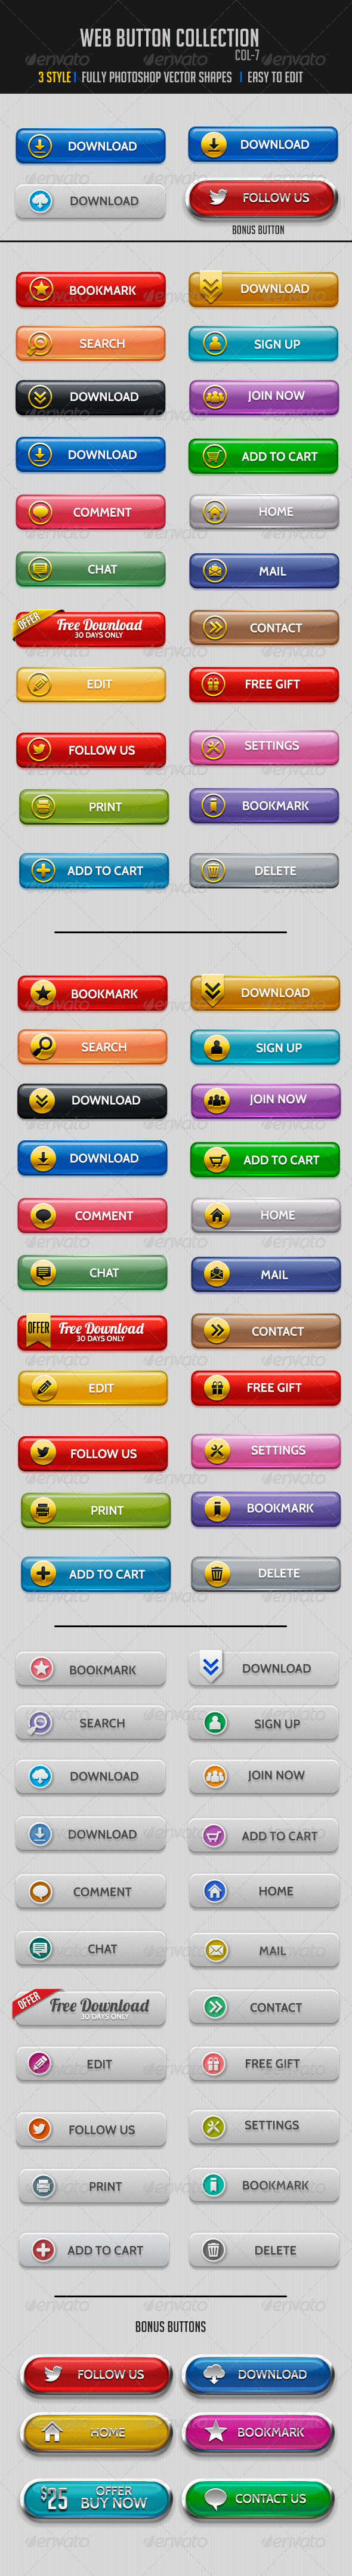 GraphicRiver Web Buttons Col-7 5247727